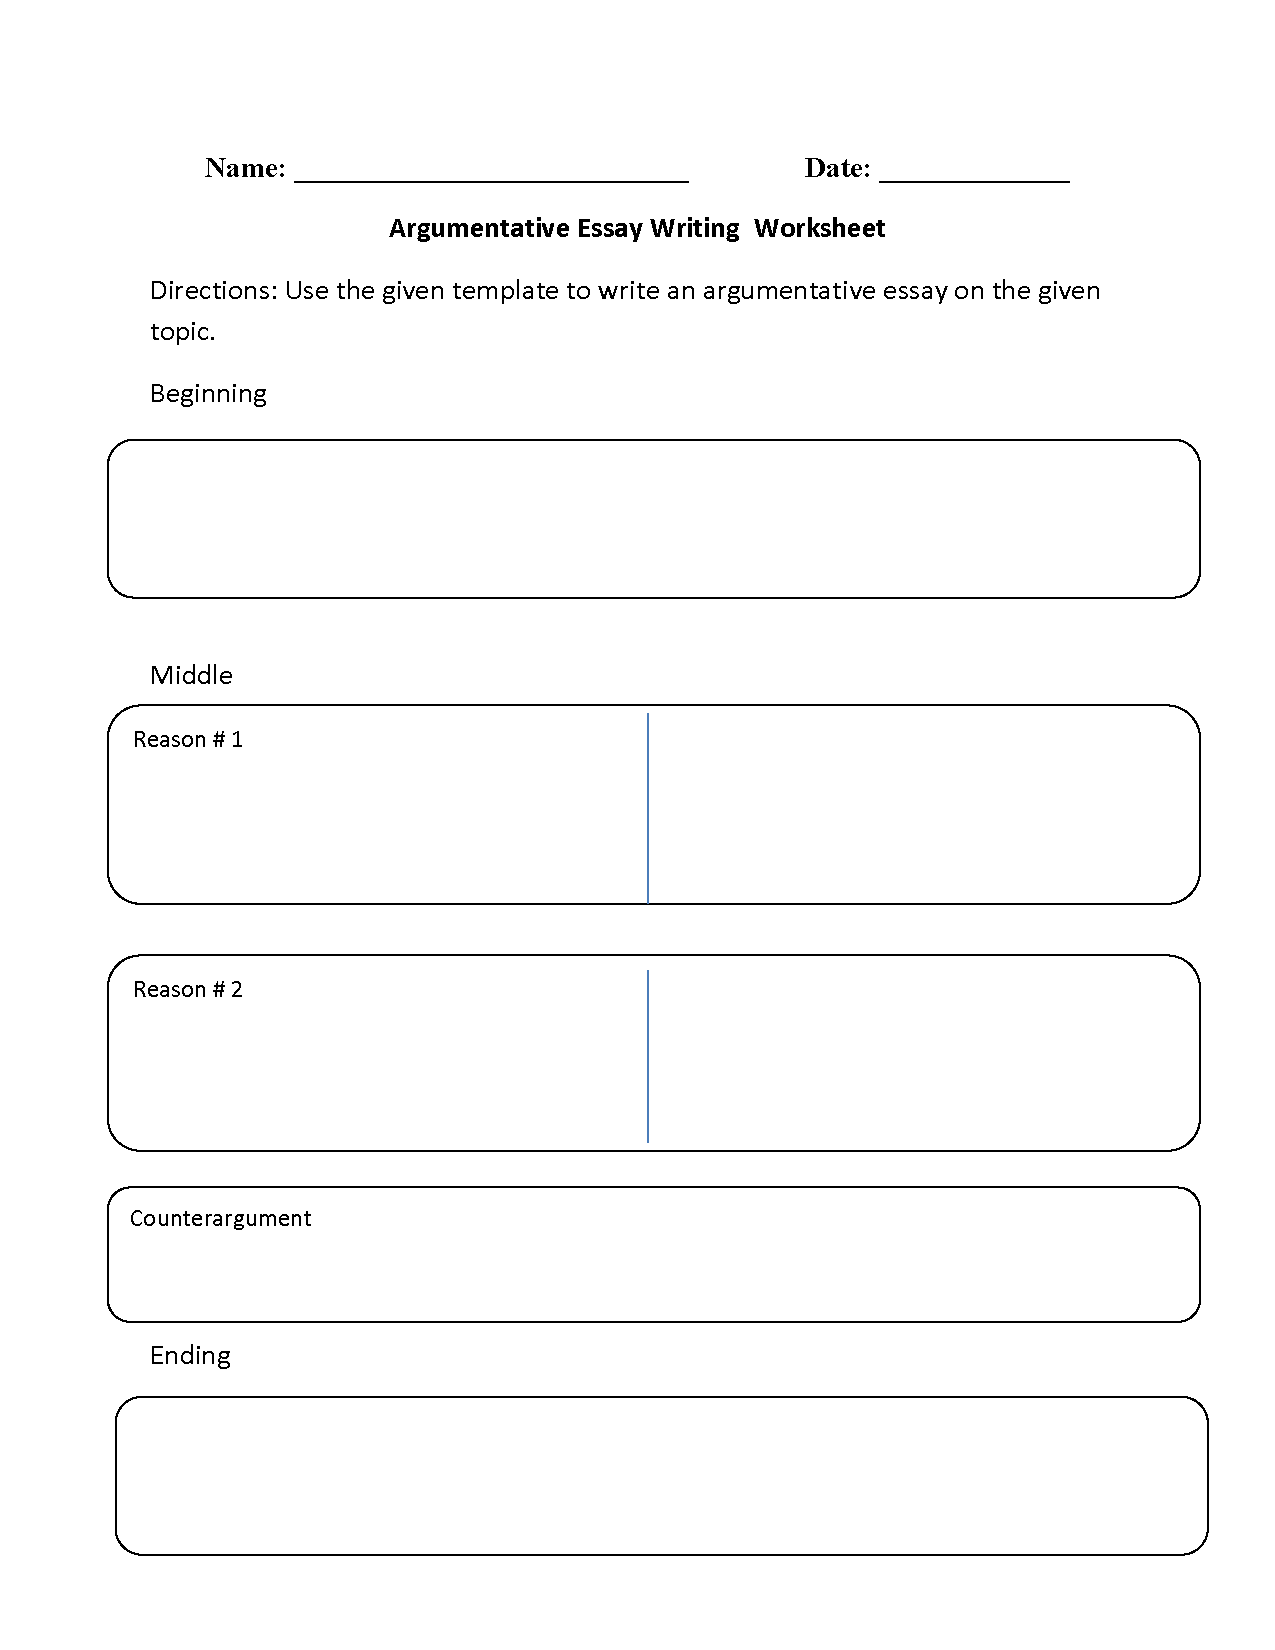 english persuasive essay writing Persuasive writing english worksheets as children progress through primary school they are expected to be able to write in different styles, one of which is known as persuasive writing.